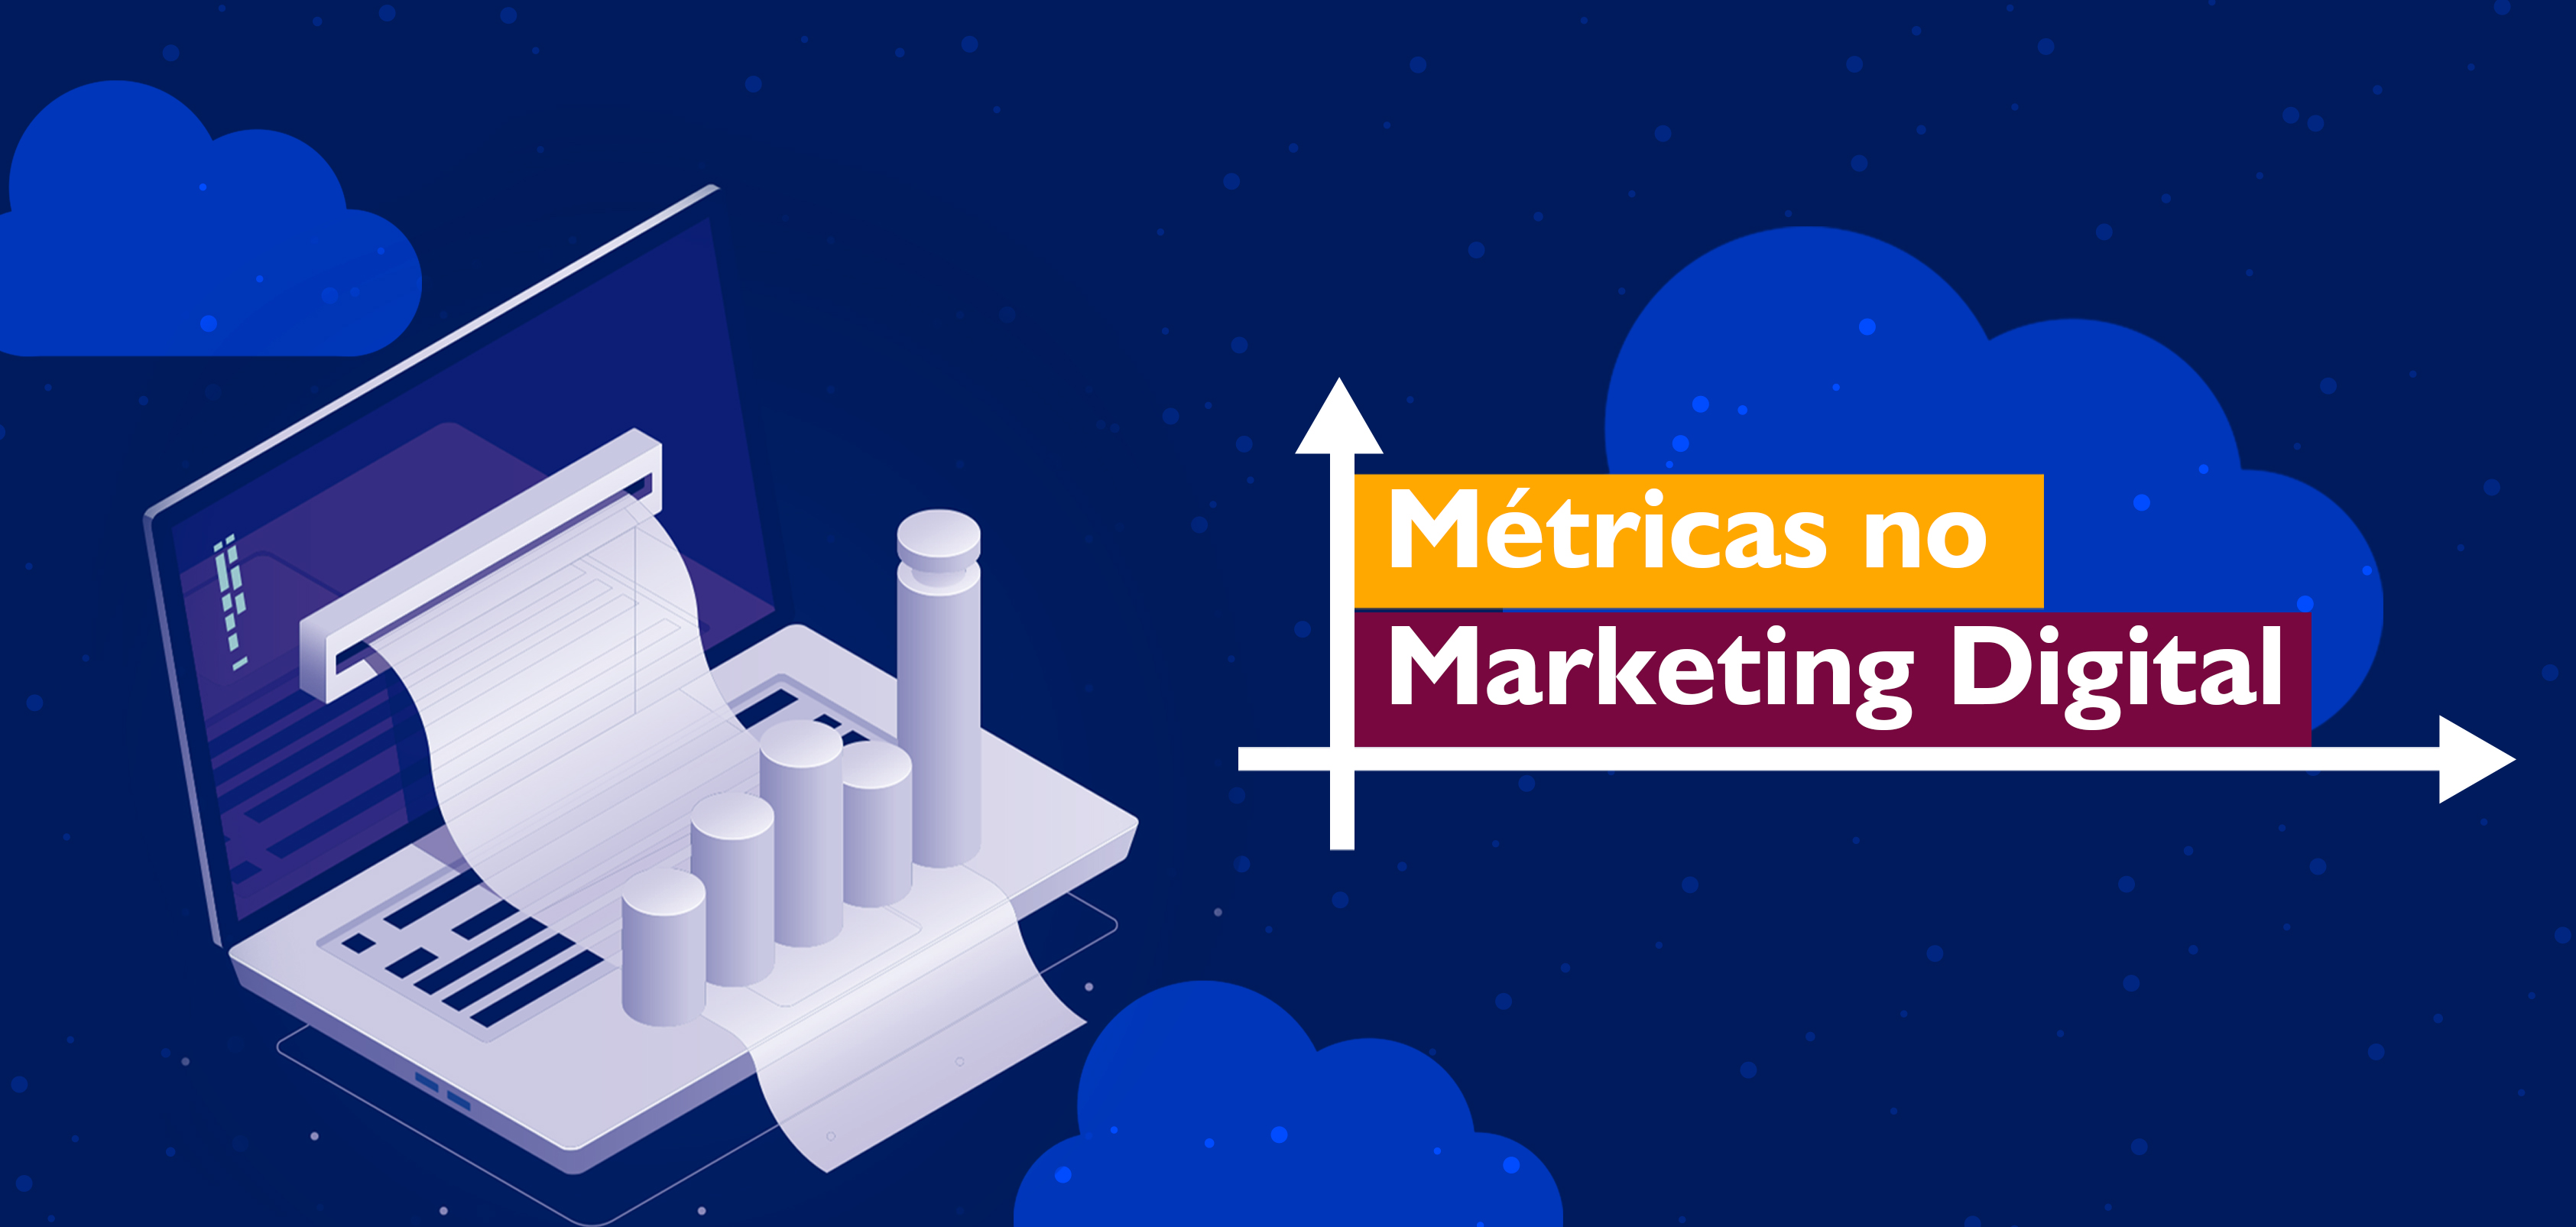 Conheça as principais Métricas do Marketing Digital